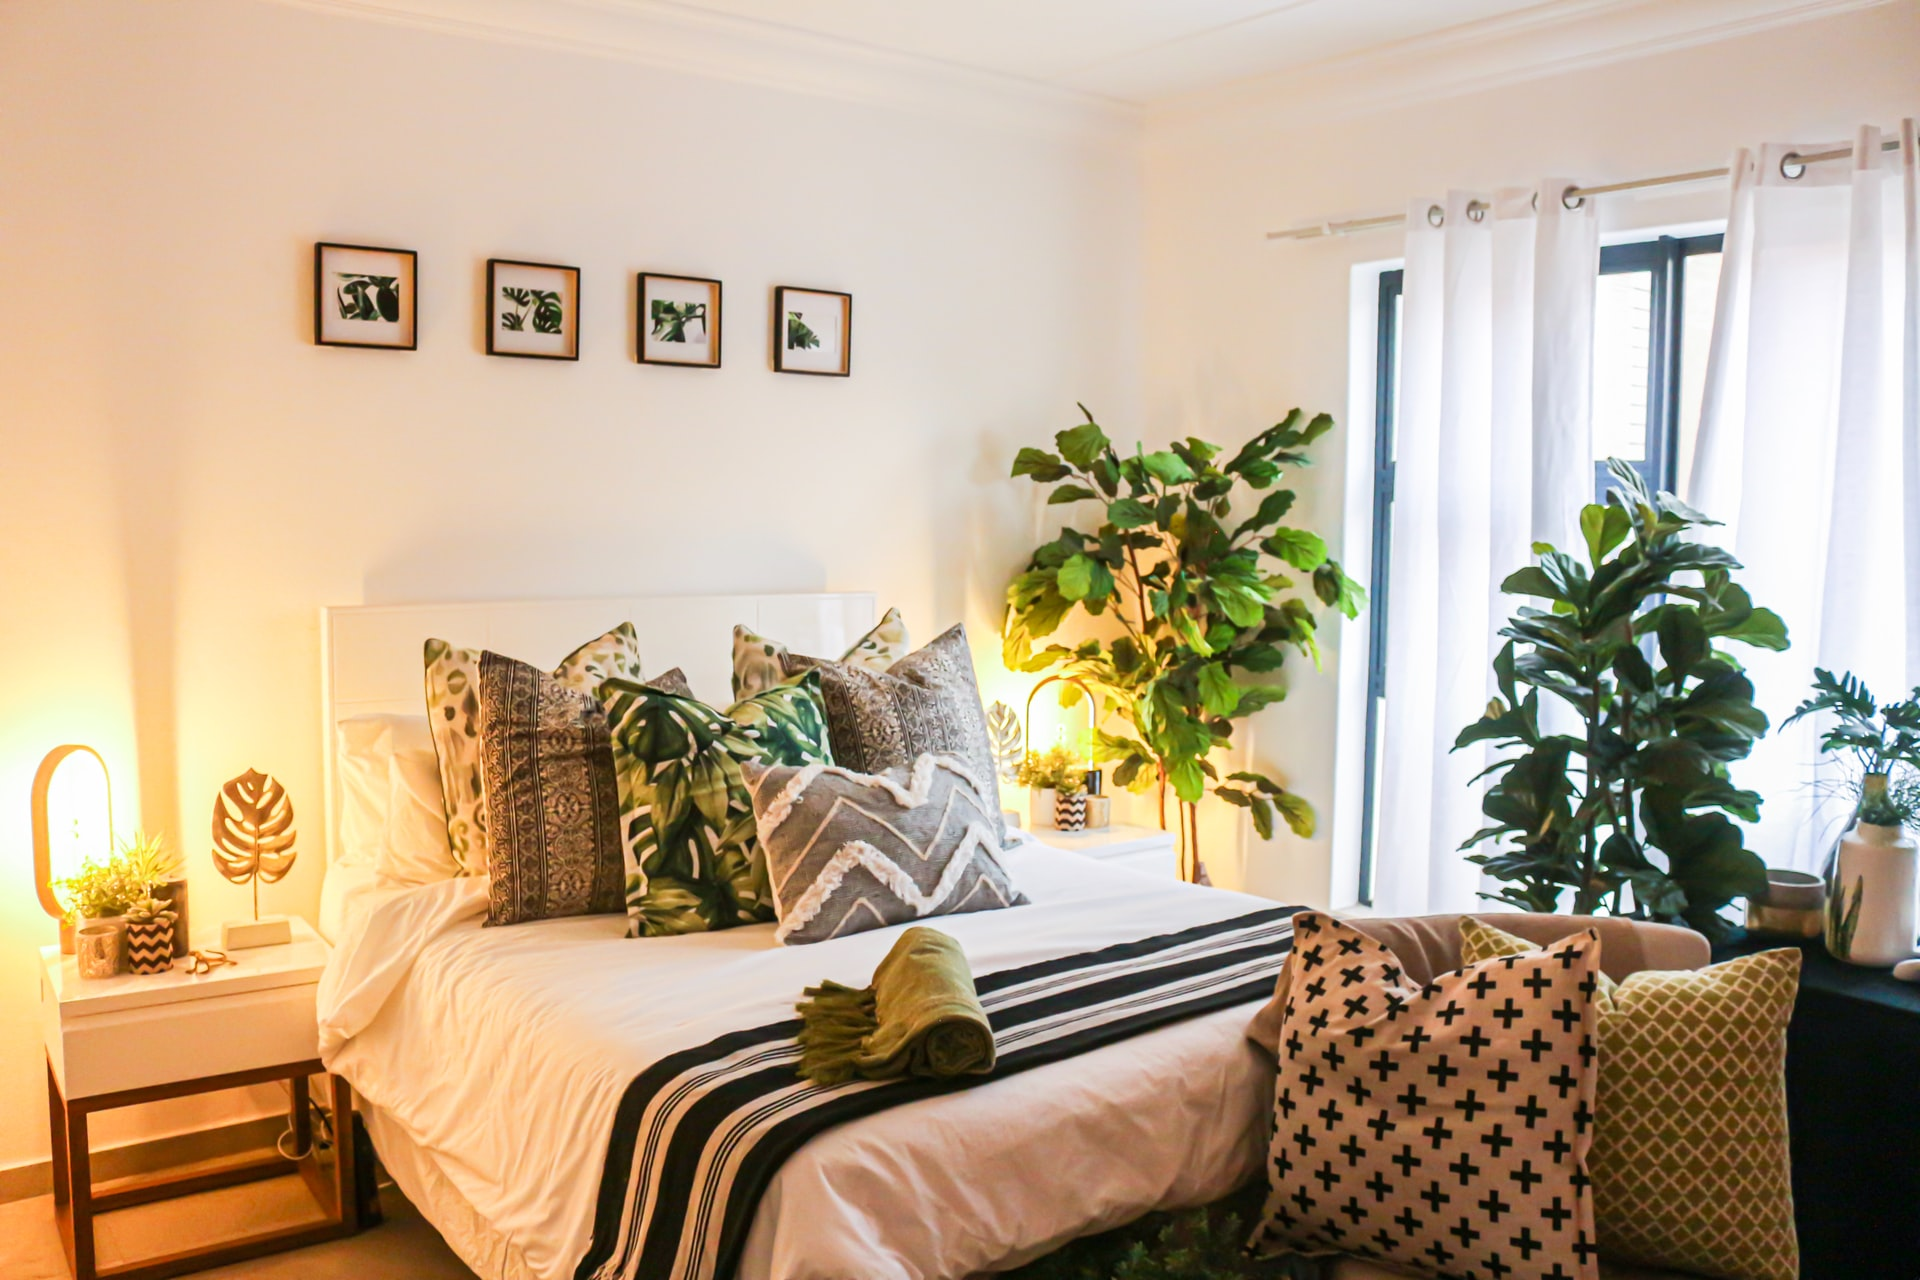 A bedroom with a neutral color scheme, textured furnishings, lots of greens, and abundant natural light